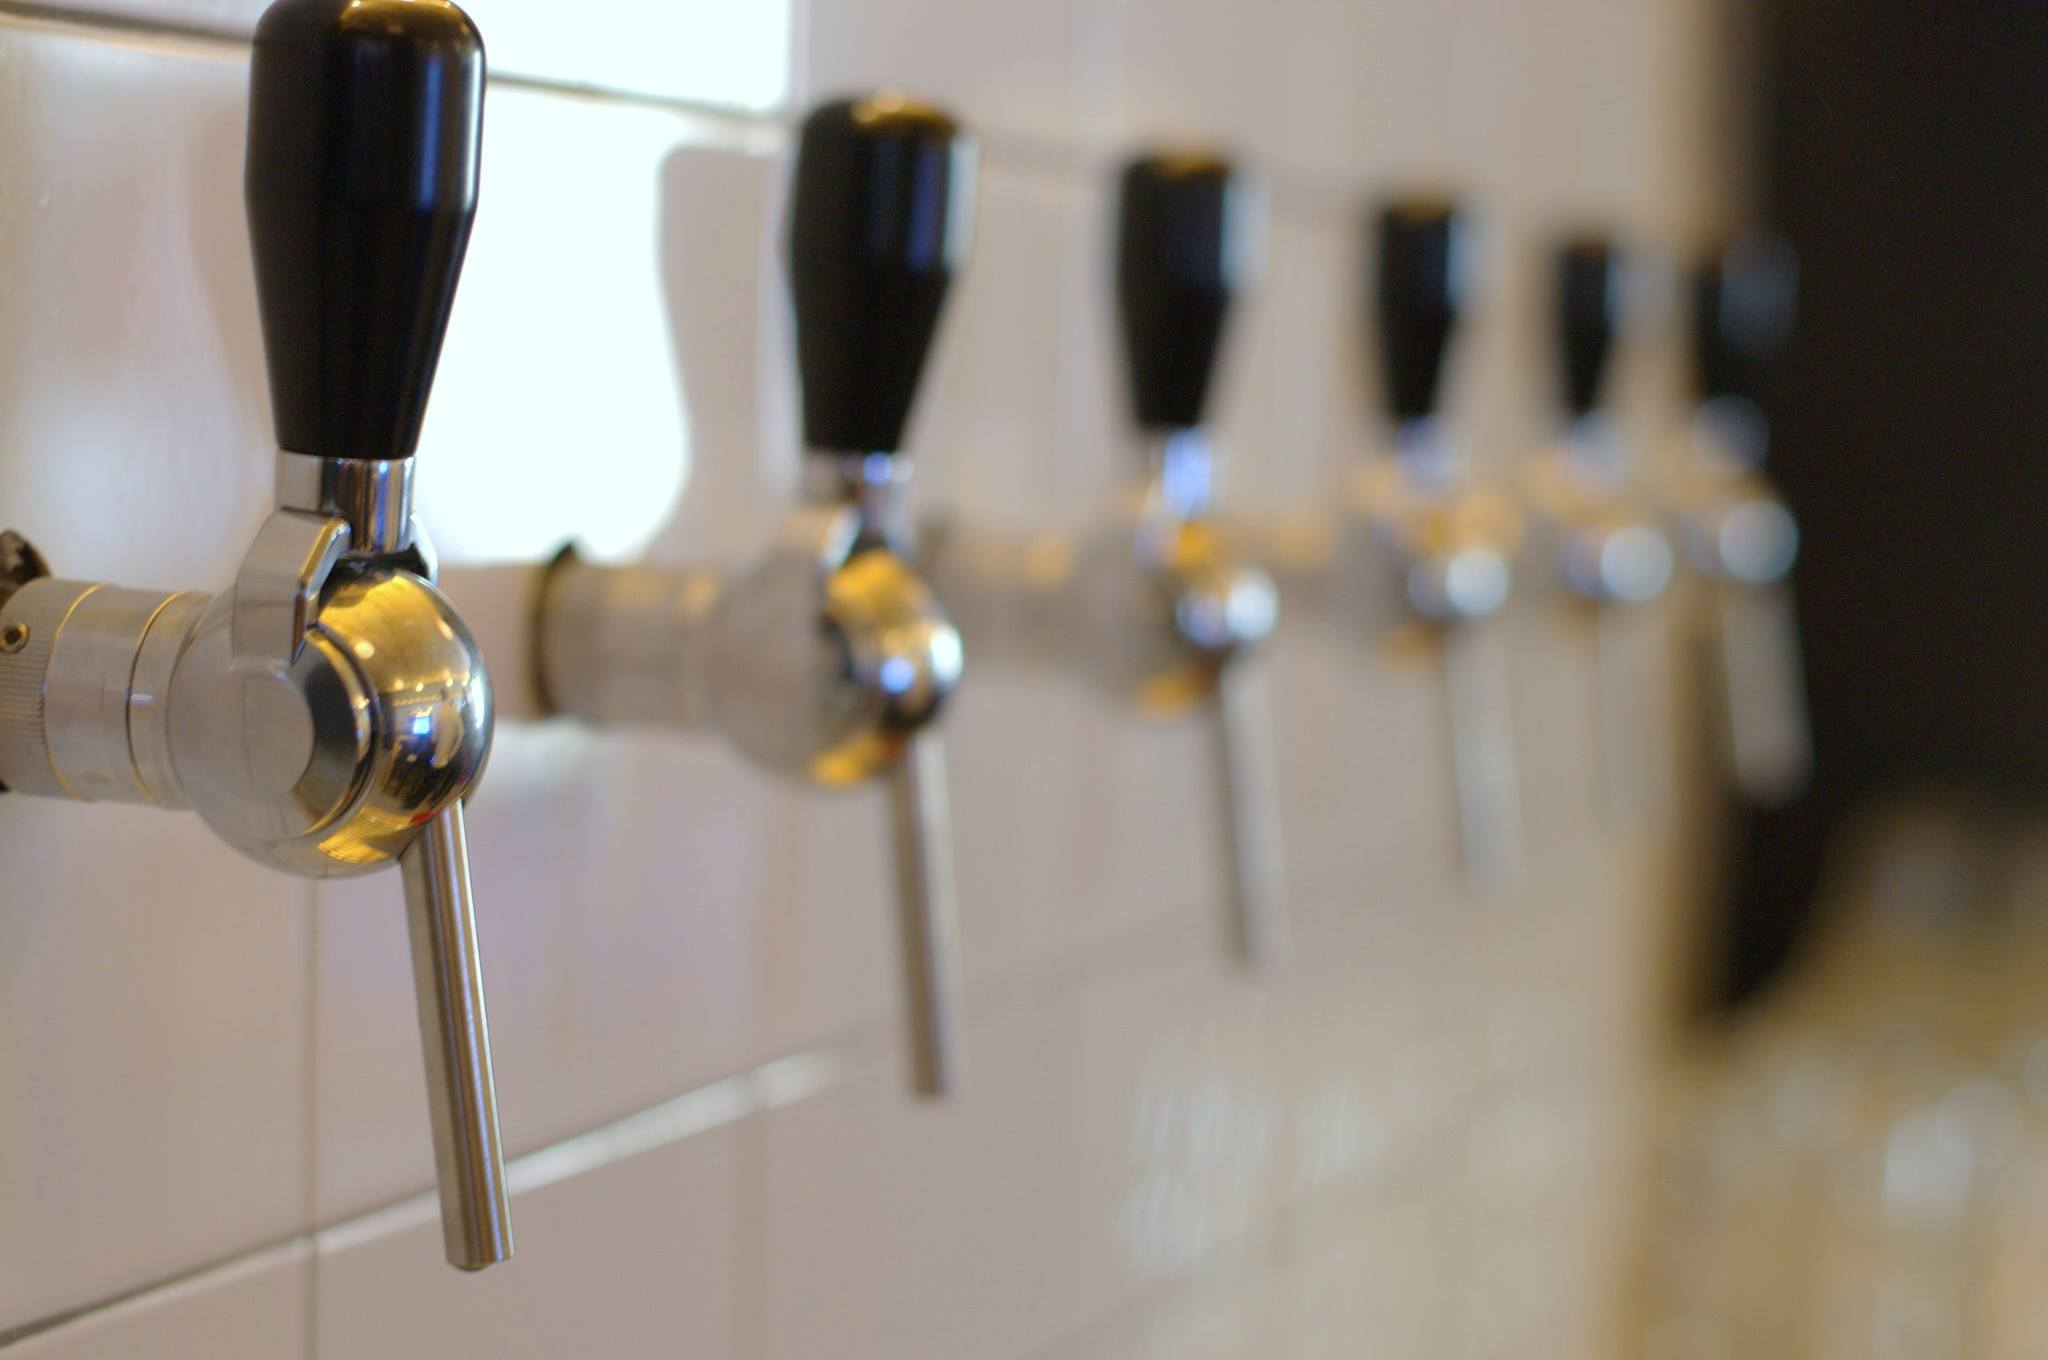 Taps ready to flow | Courtesy Maquila Bar